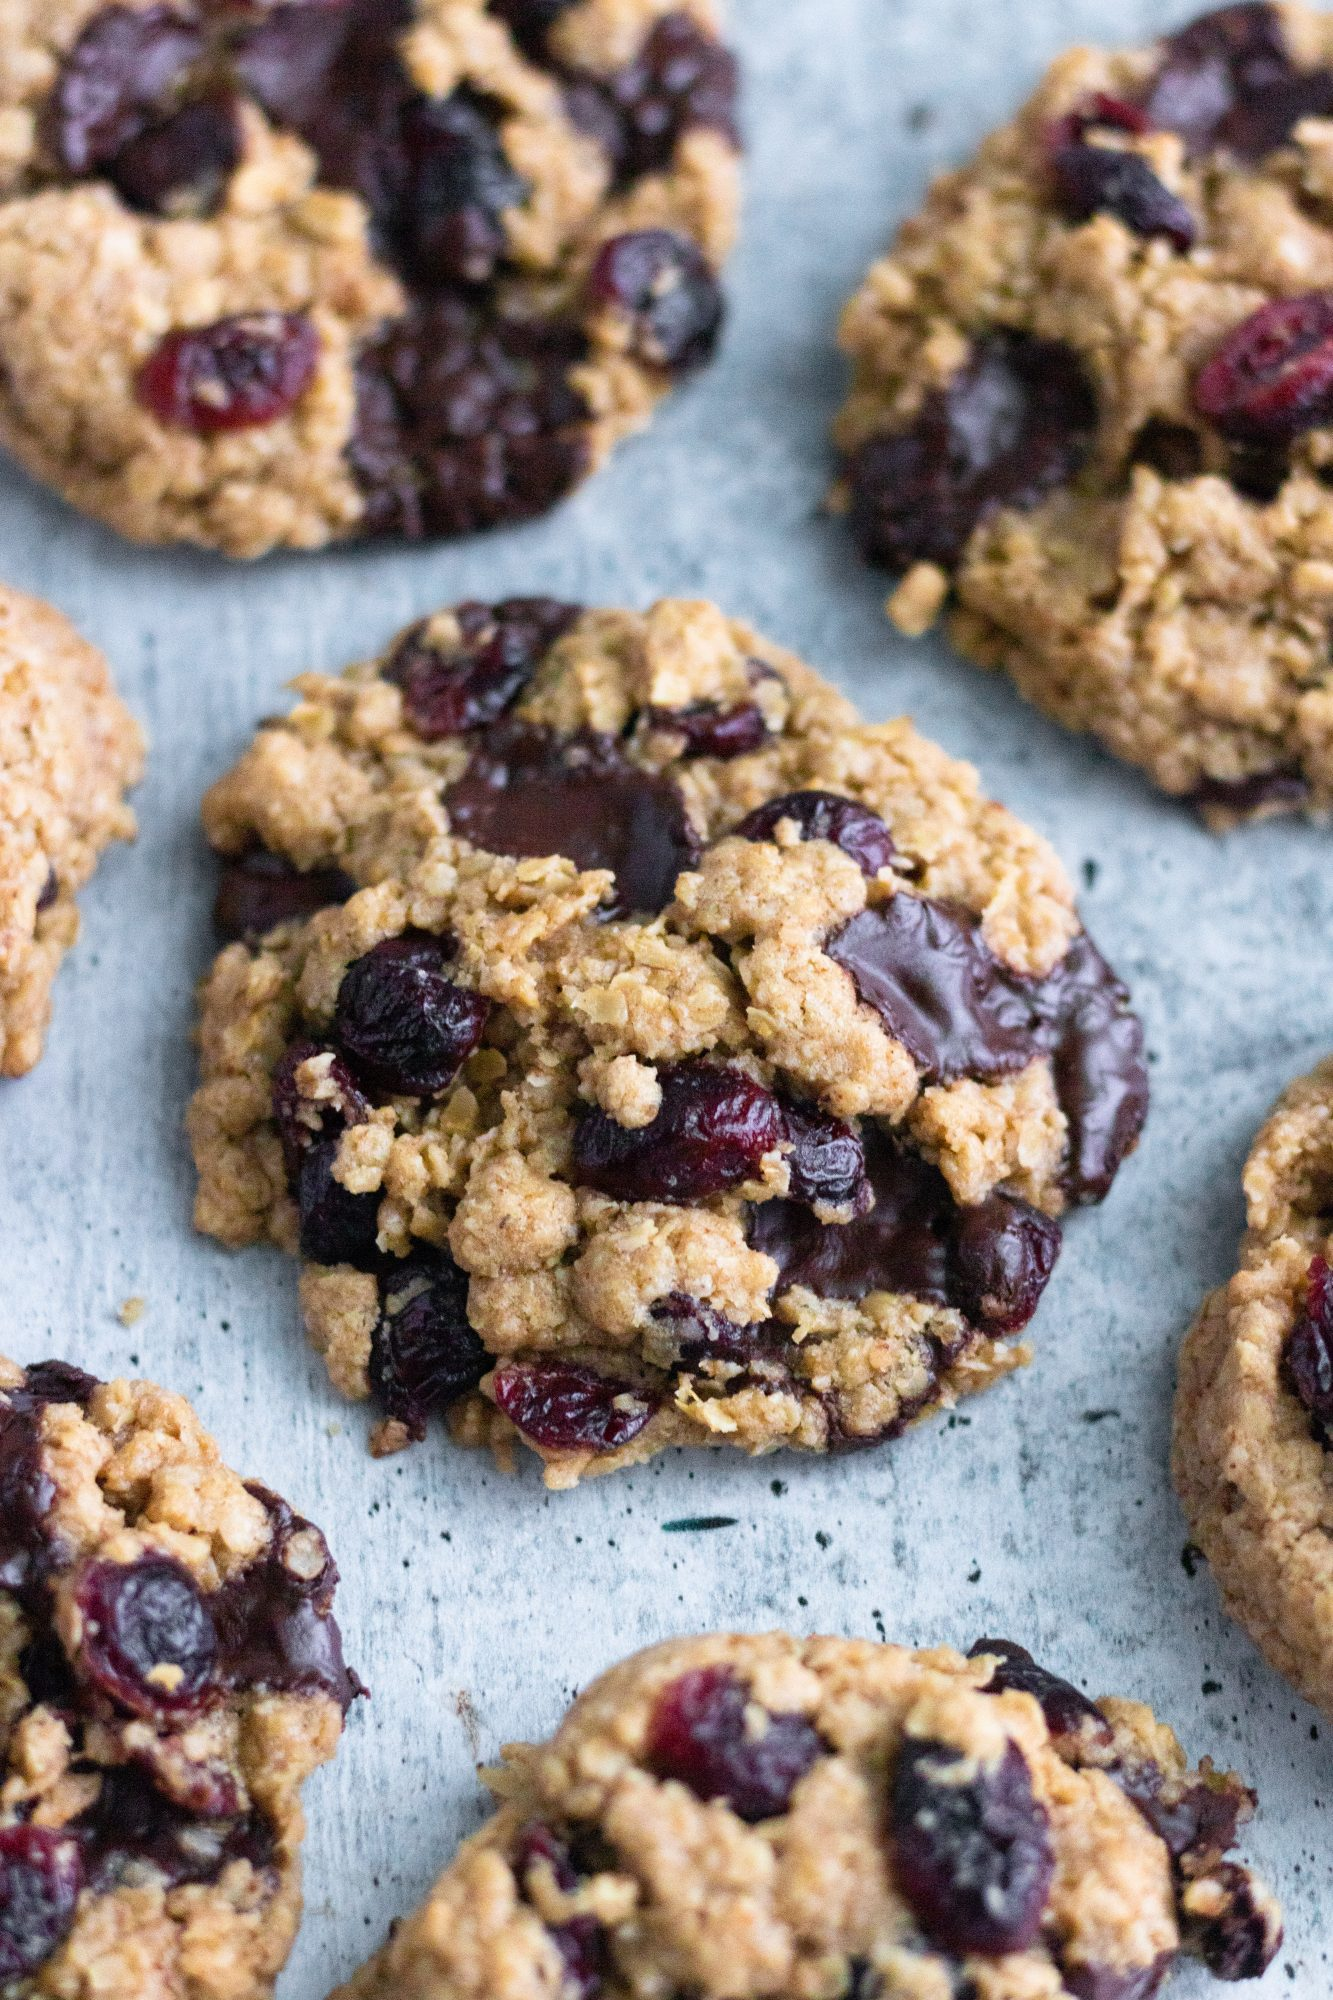 Cranberry & Chocolate Chunk Oatmeal Cookies